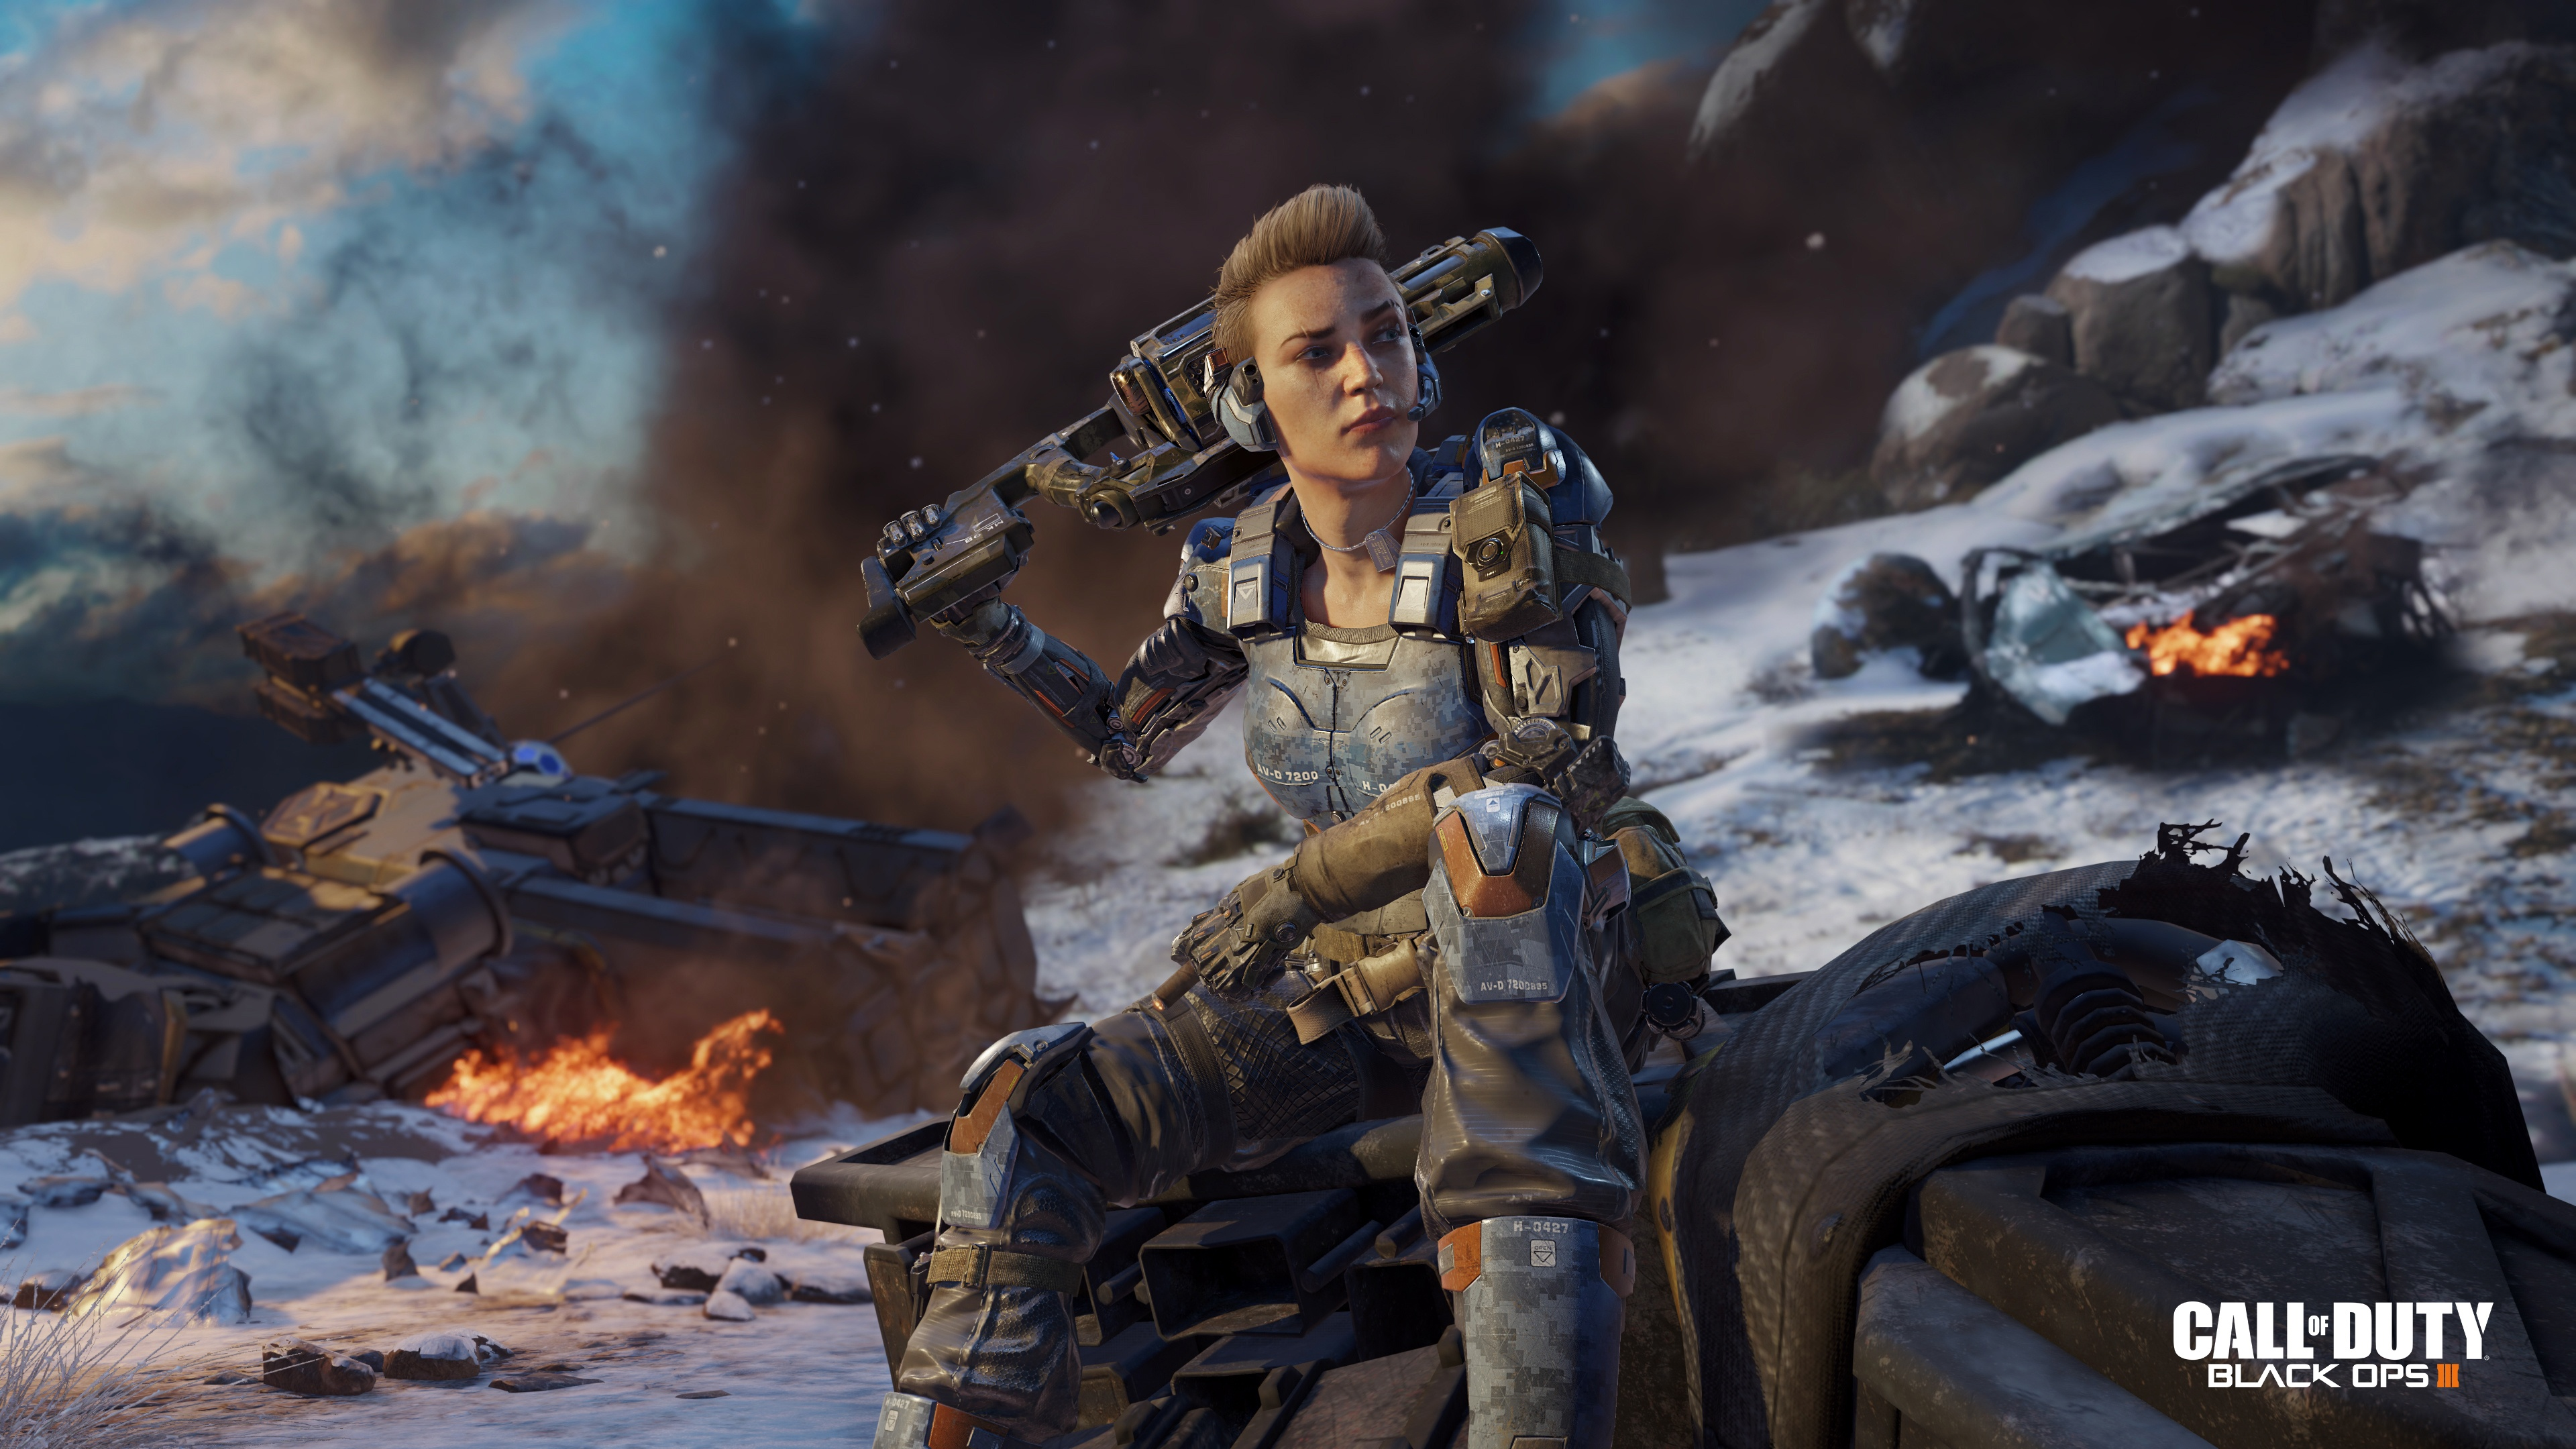 Call Of Duty Black Ops 3 Specialist Battery Wallpapers In Jpg Format For Free Download